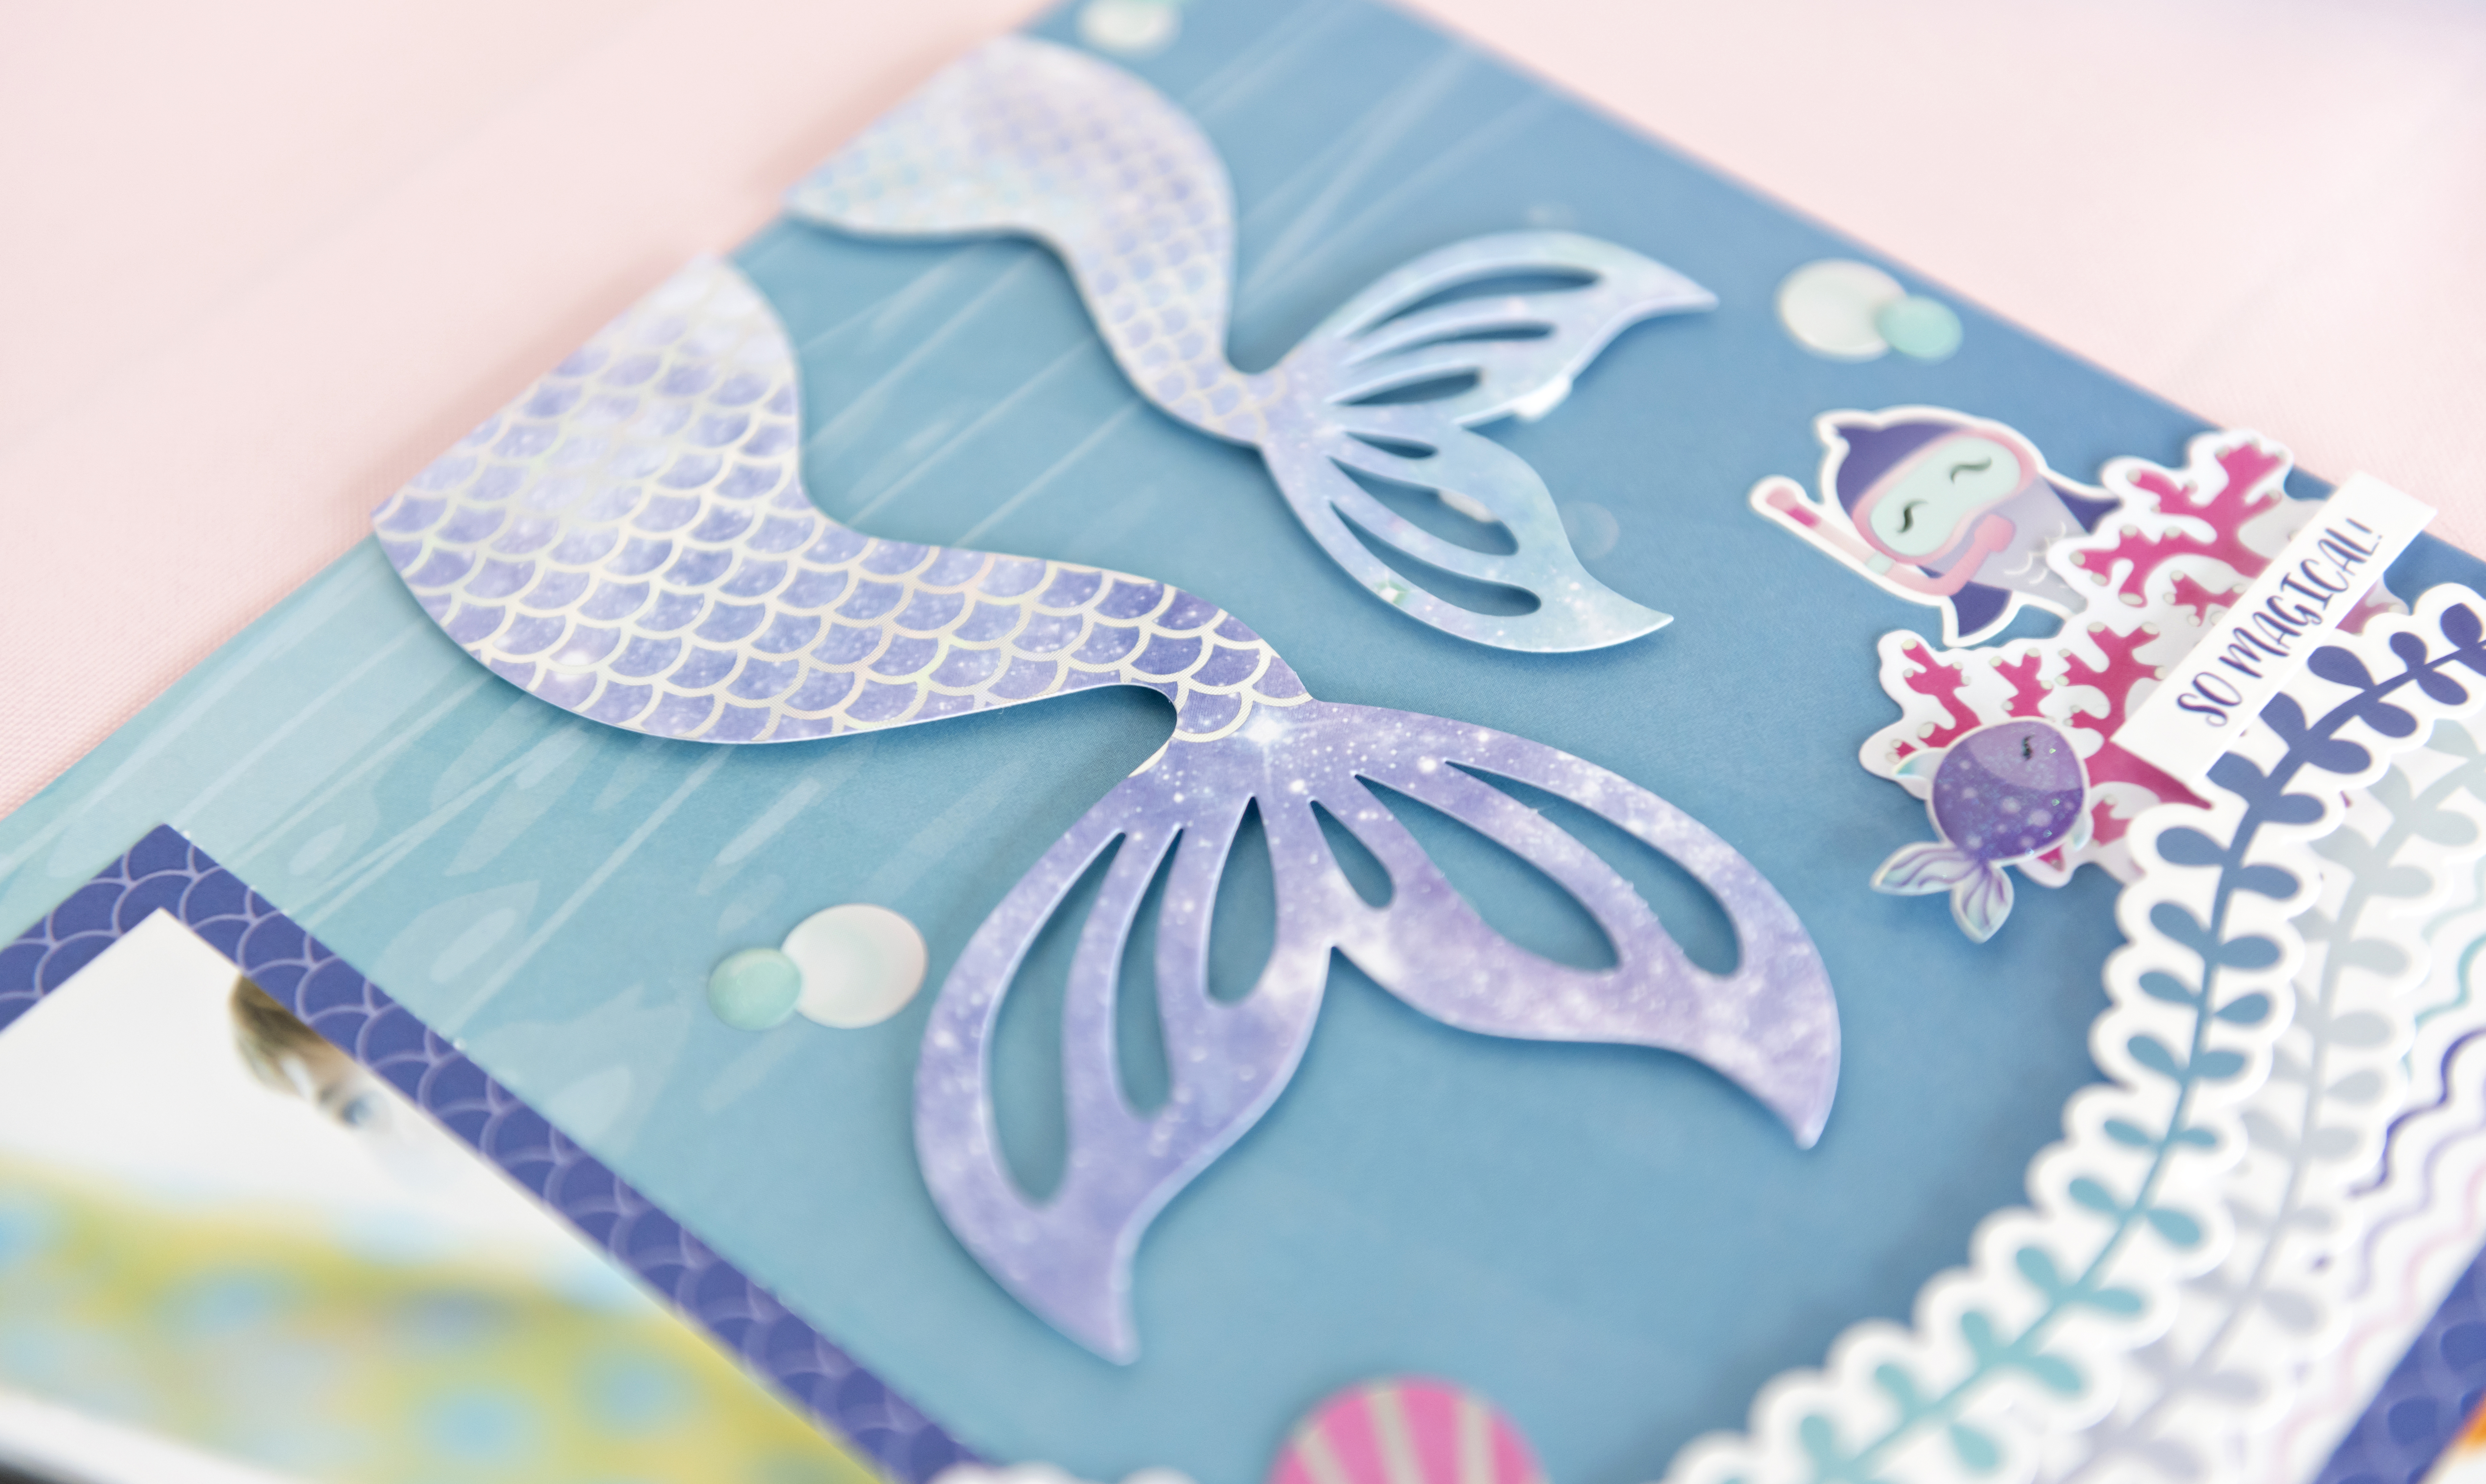 mermaid-cove-closeup-creative-memories7